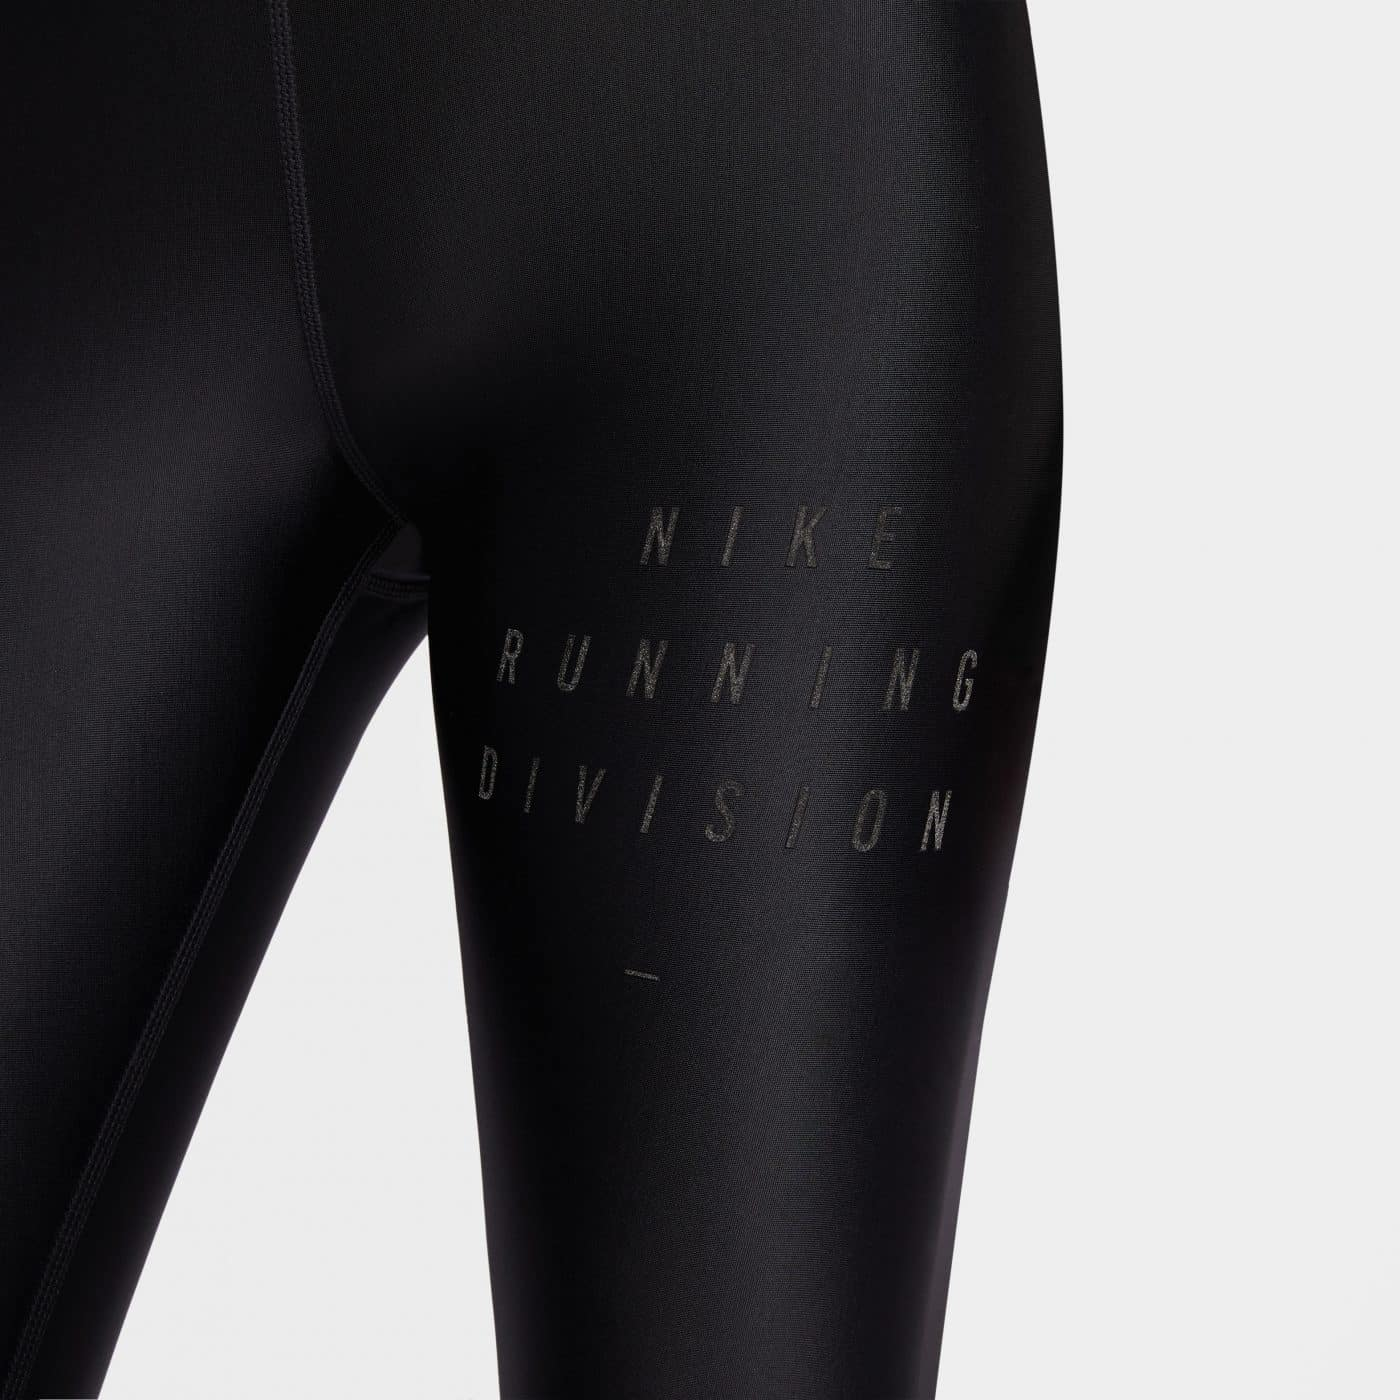 Nike_Run_Division_Textile_Collection_8